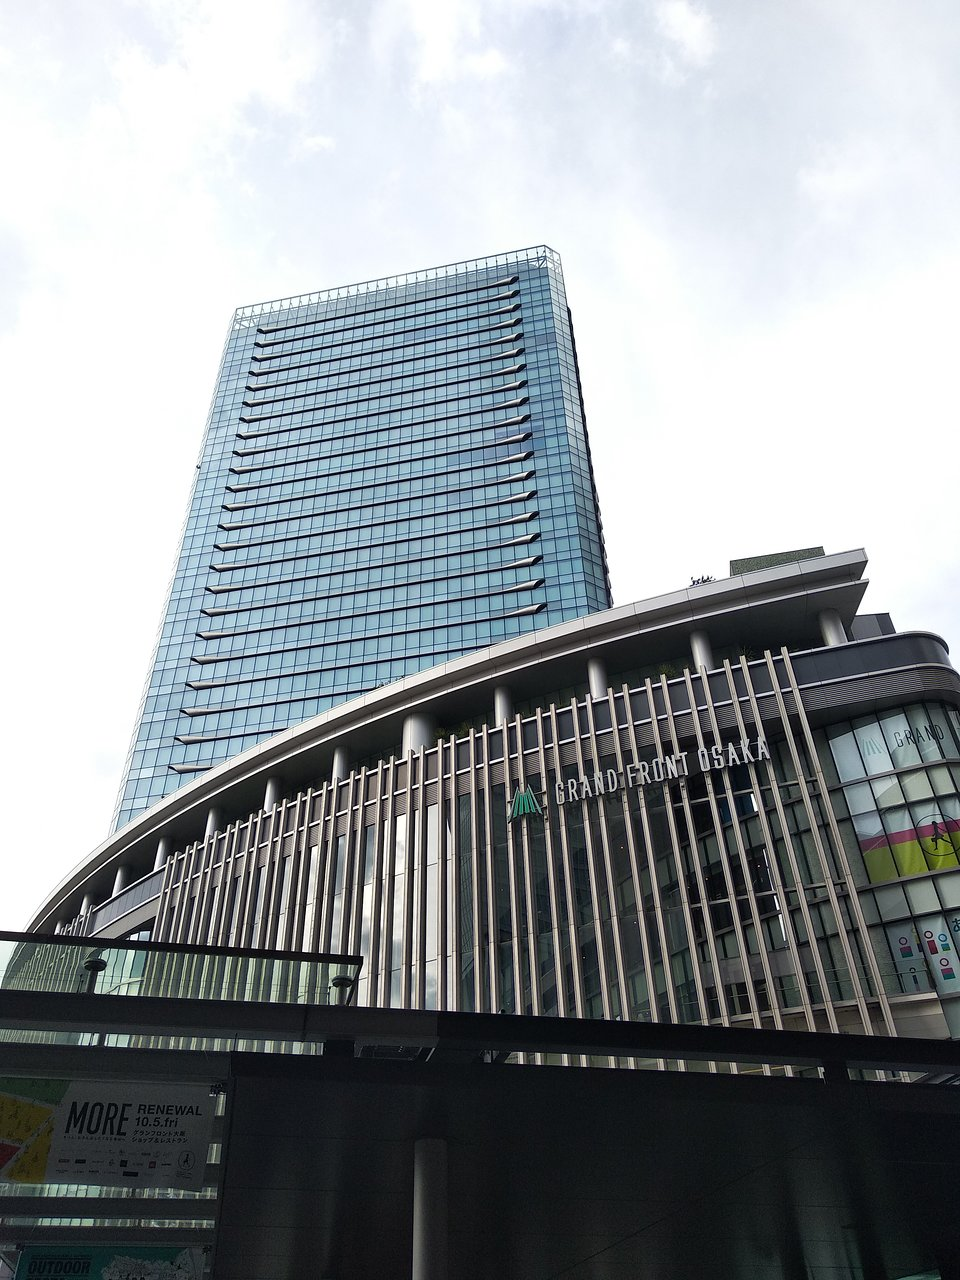 Grand Front Osaka (Kita) - 2019 Book in Destination - All You Need